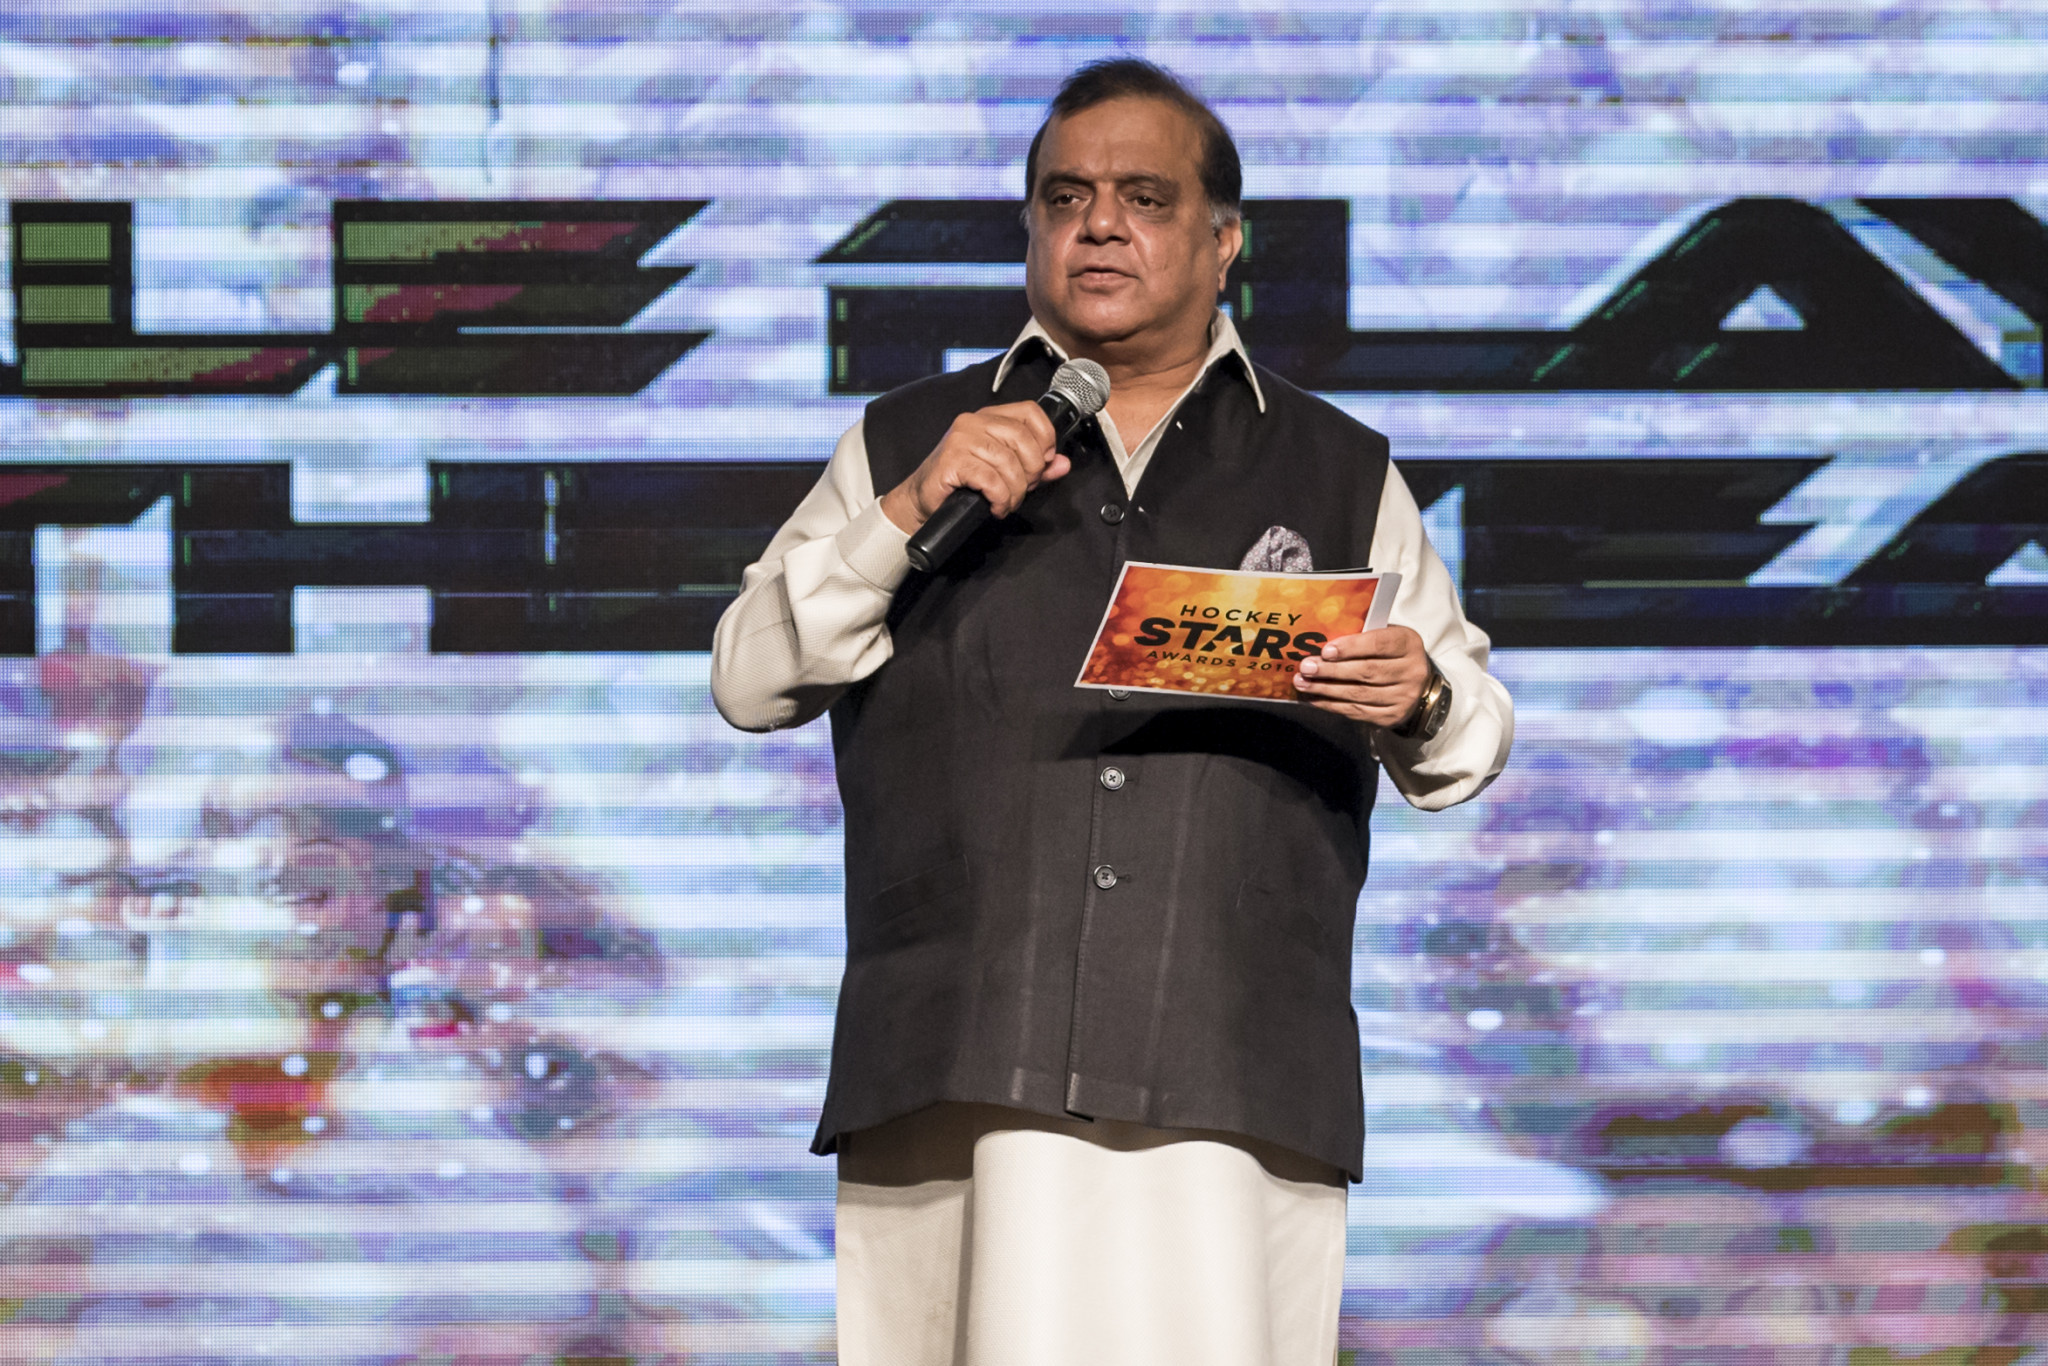 IOA President Narinder Batra asked to meet with India's Sports Minister to discuss the boycott ©Getty Images